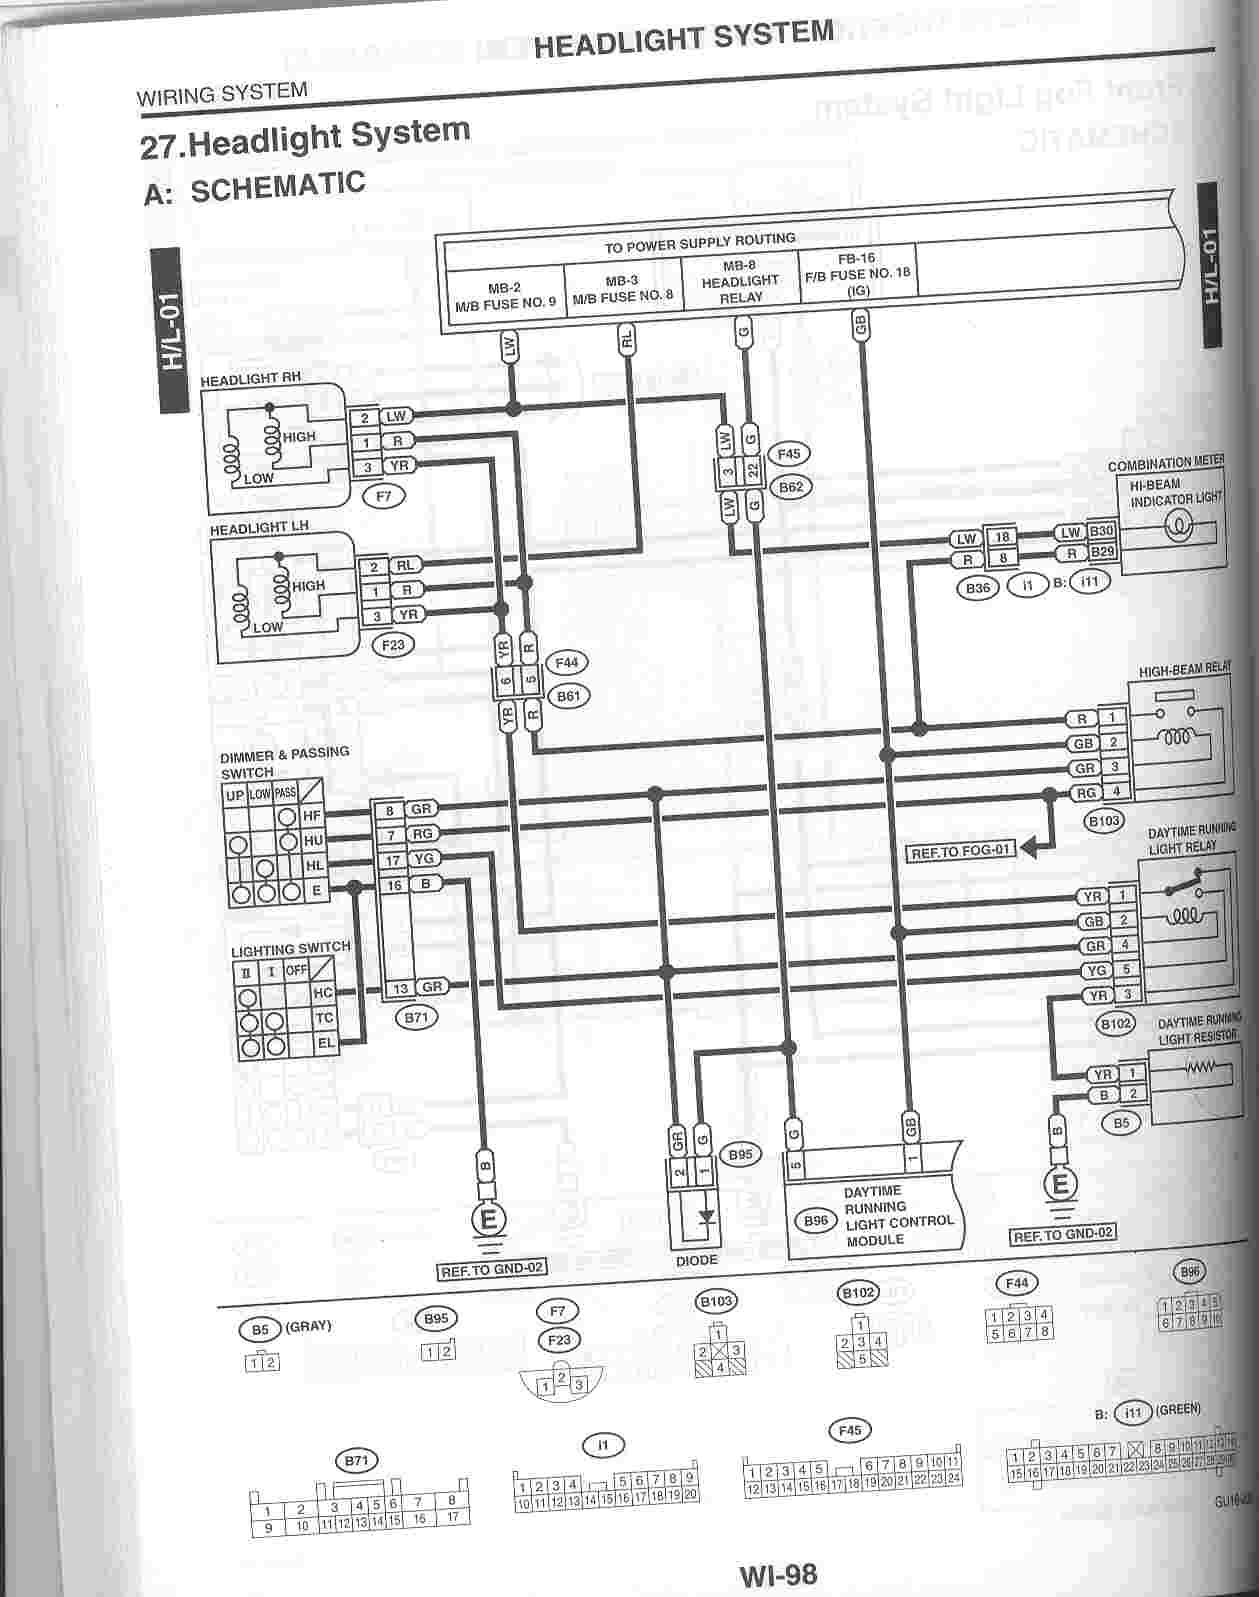 97 Legacy Wiring Diagram - Camaro Wiring Schematic -  foreman.tehsusu.decorresine.itWiring Diagram Resource